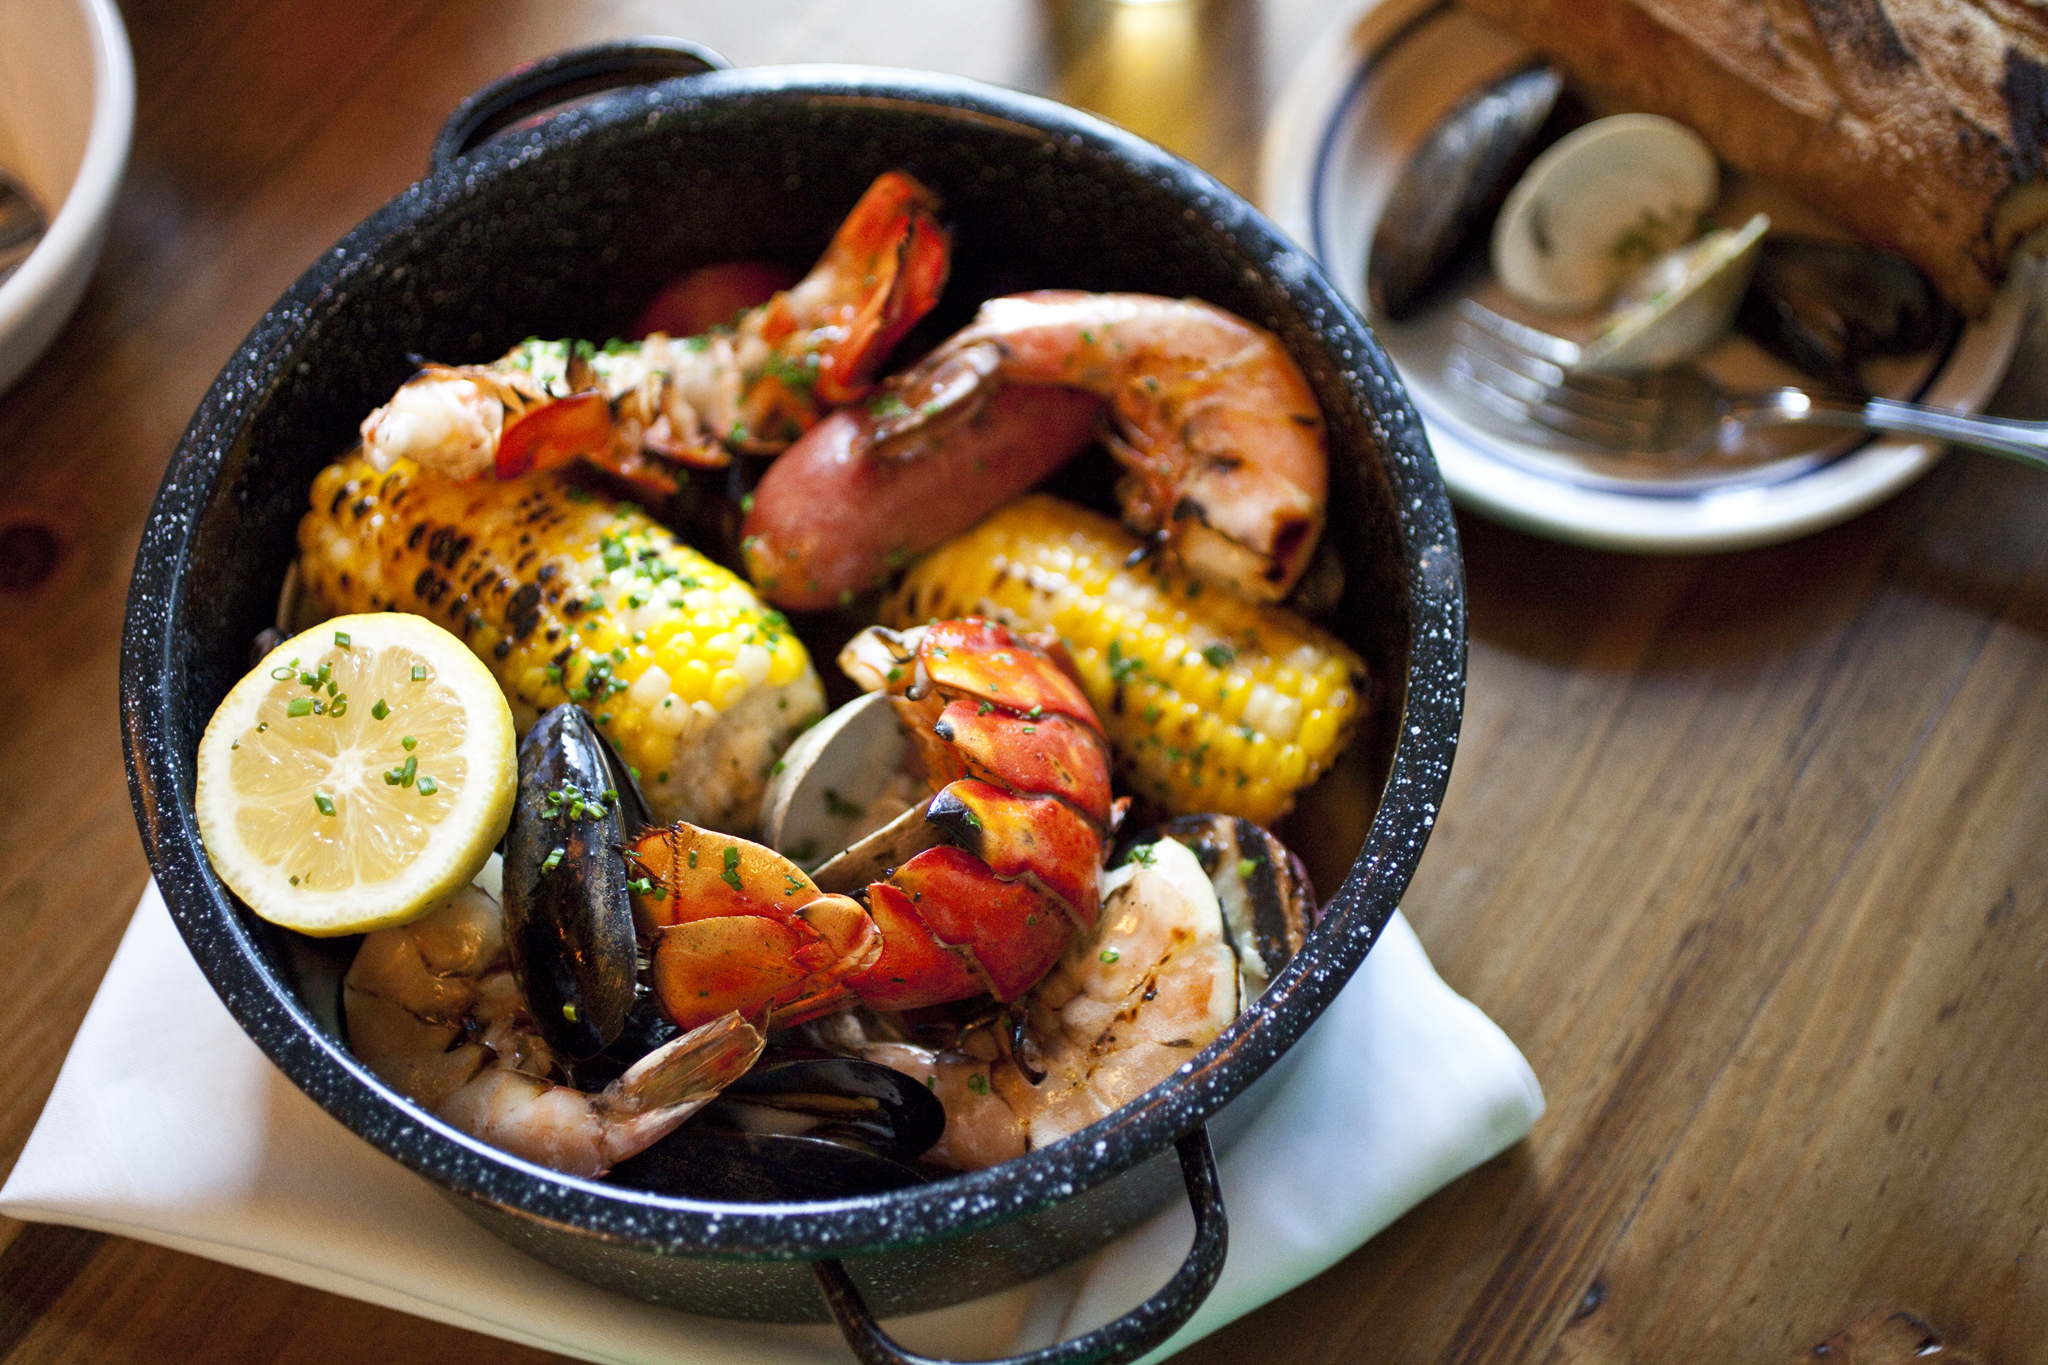 Seaside eats: Best summer seafood dishes in NYC